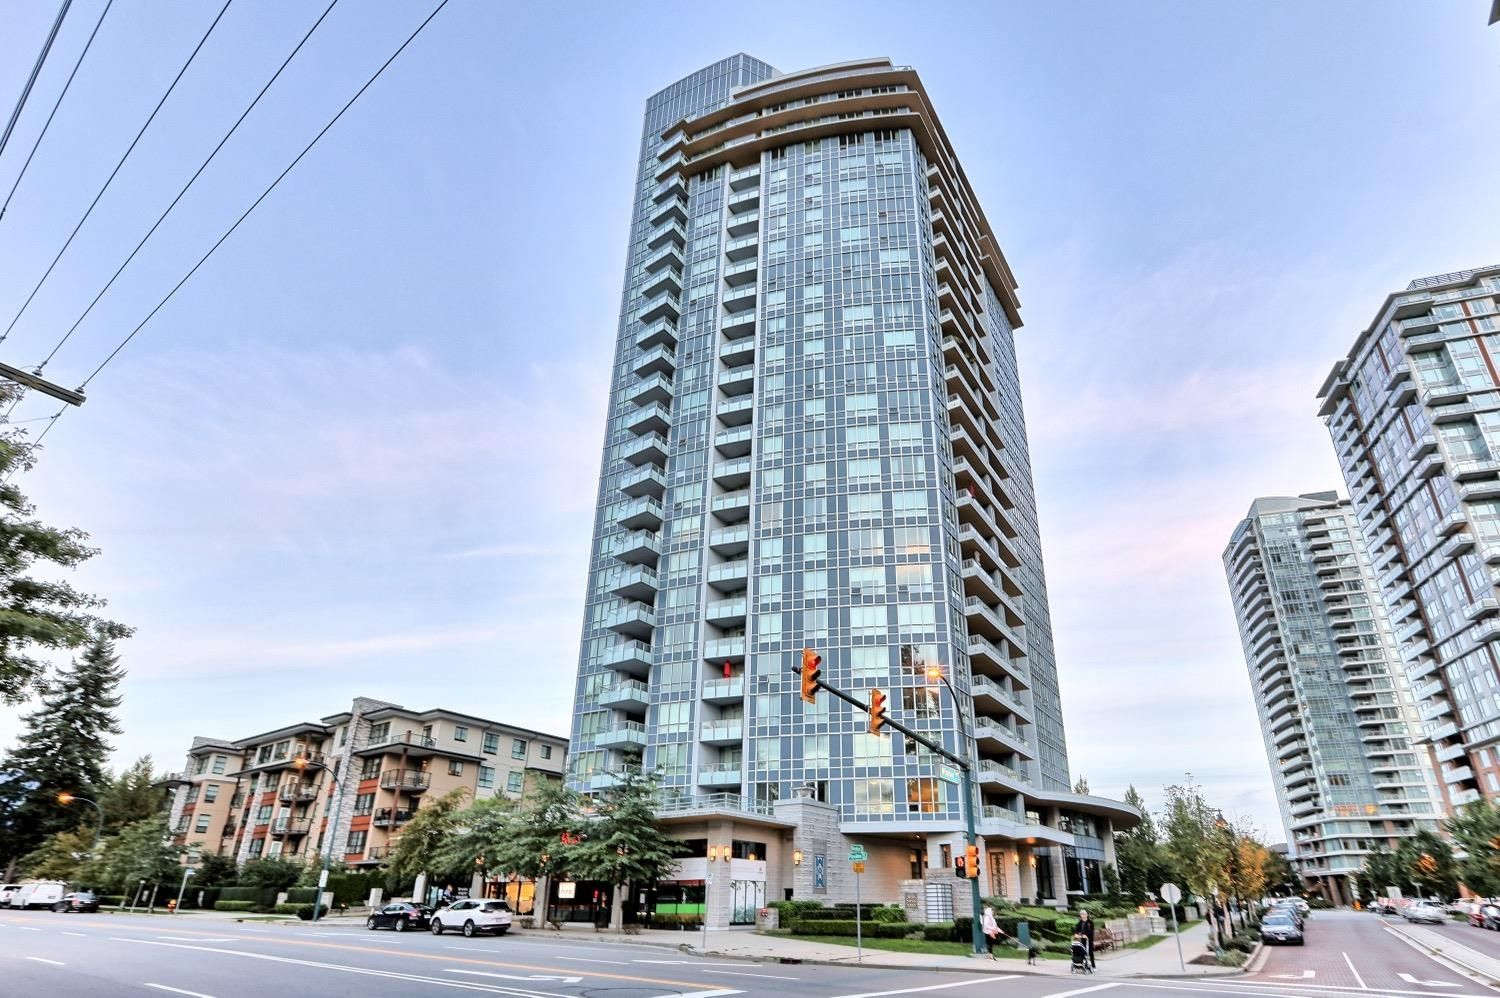 Main Photo: 206 3093 WINDSOR Gate in Coquitlam: New Horizons Condo for sale : MLS®# R2624700